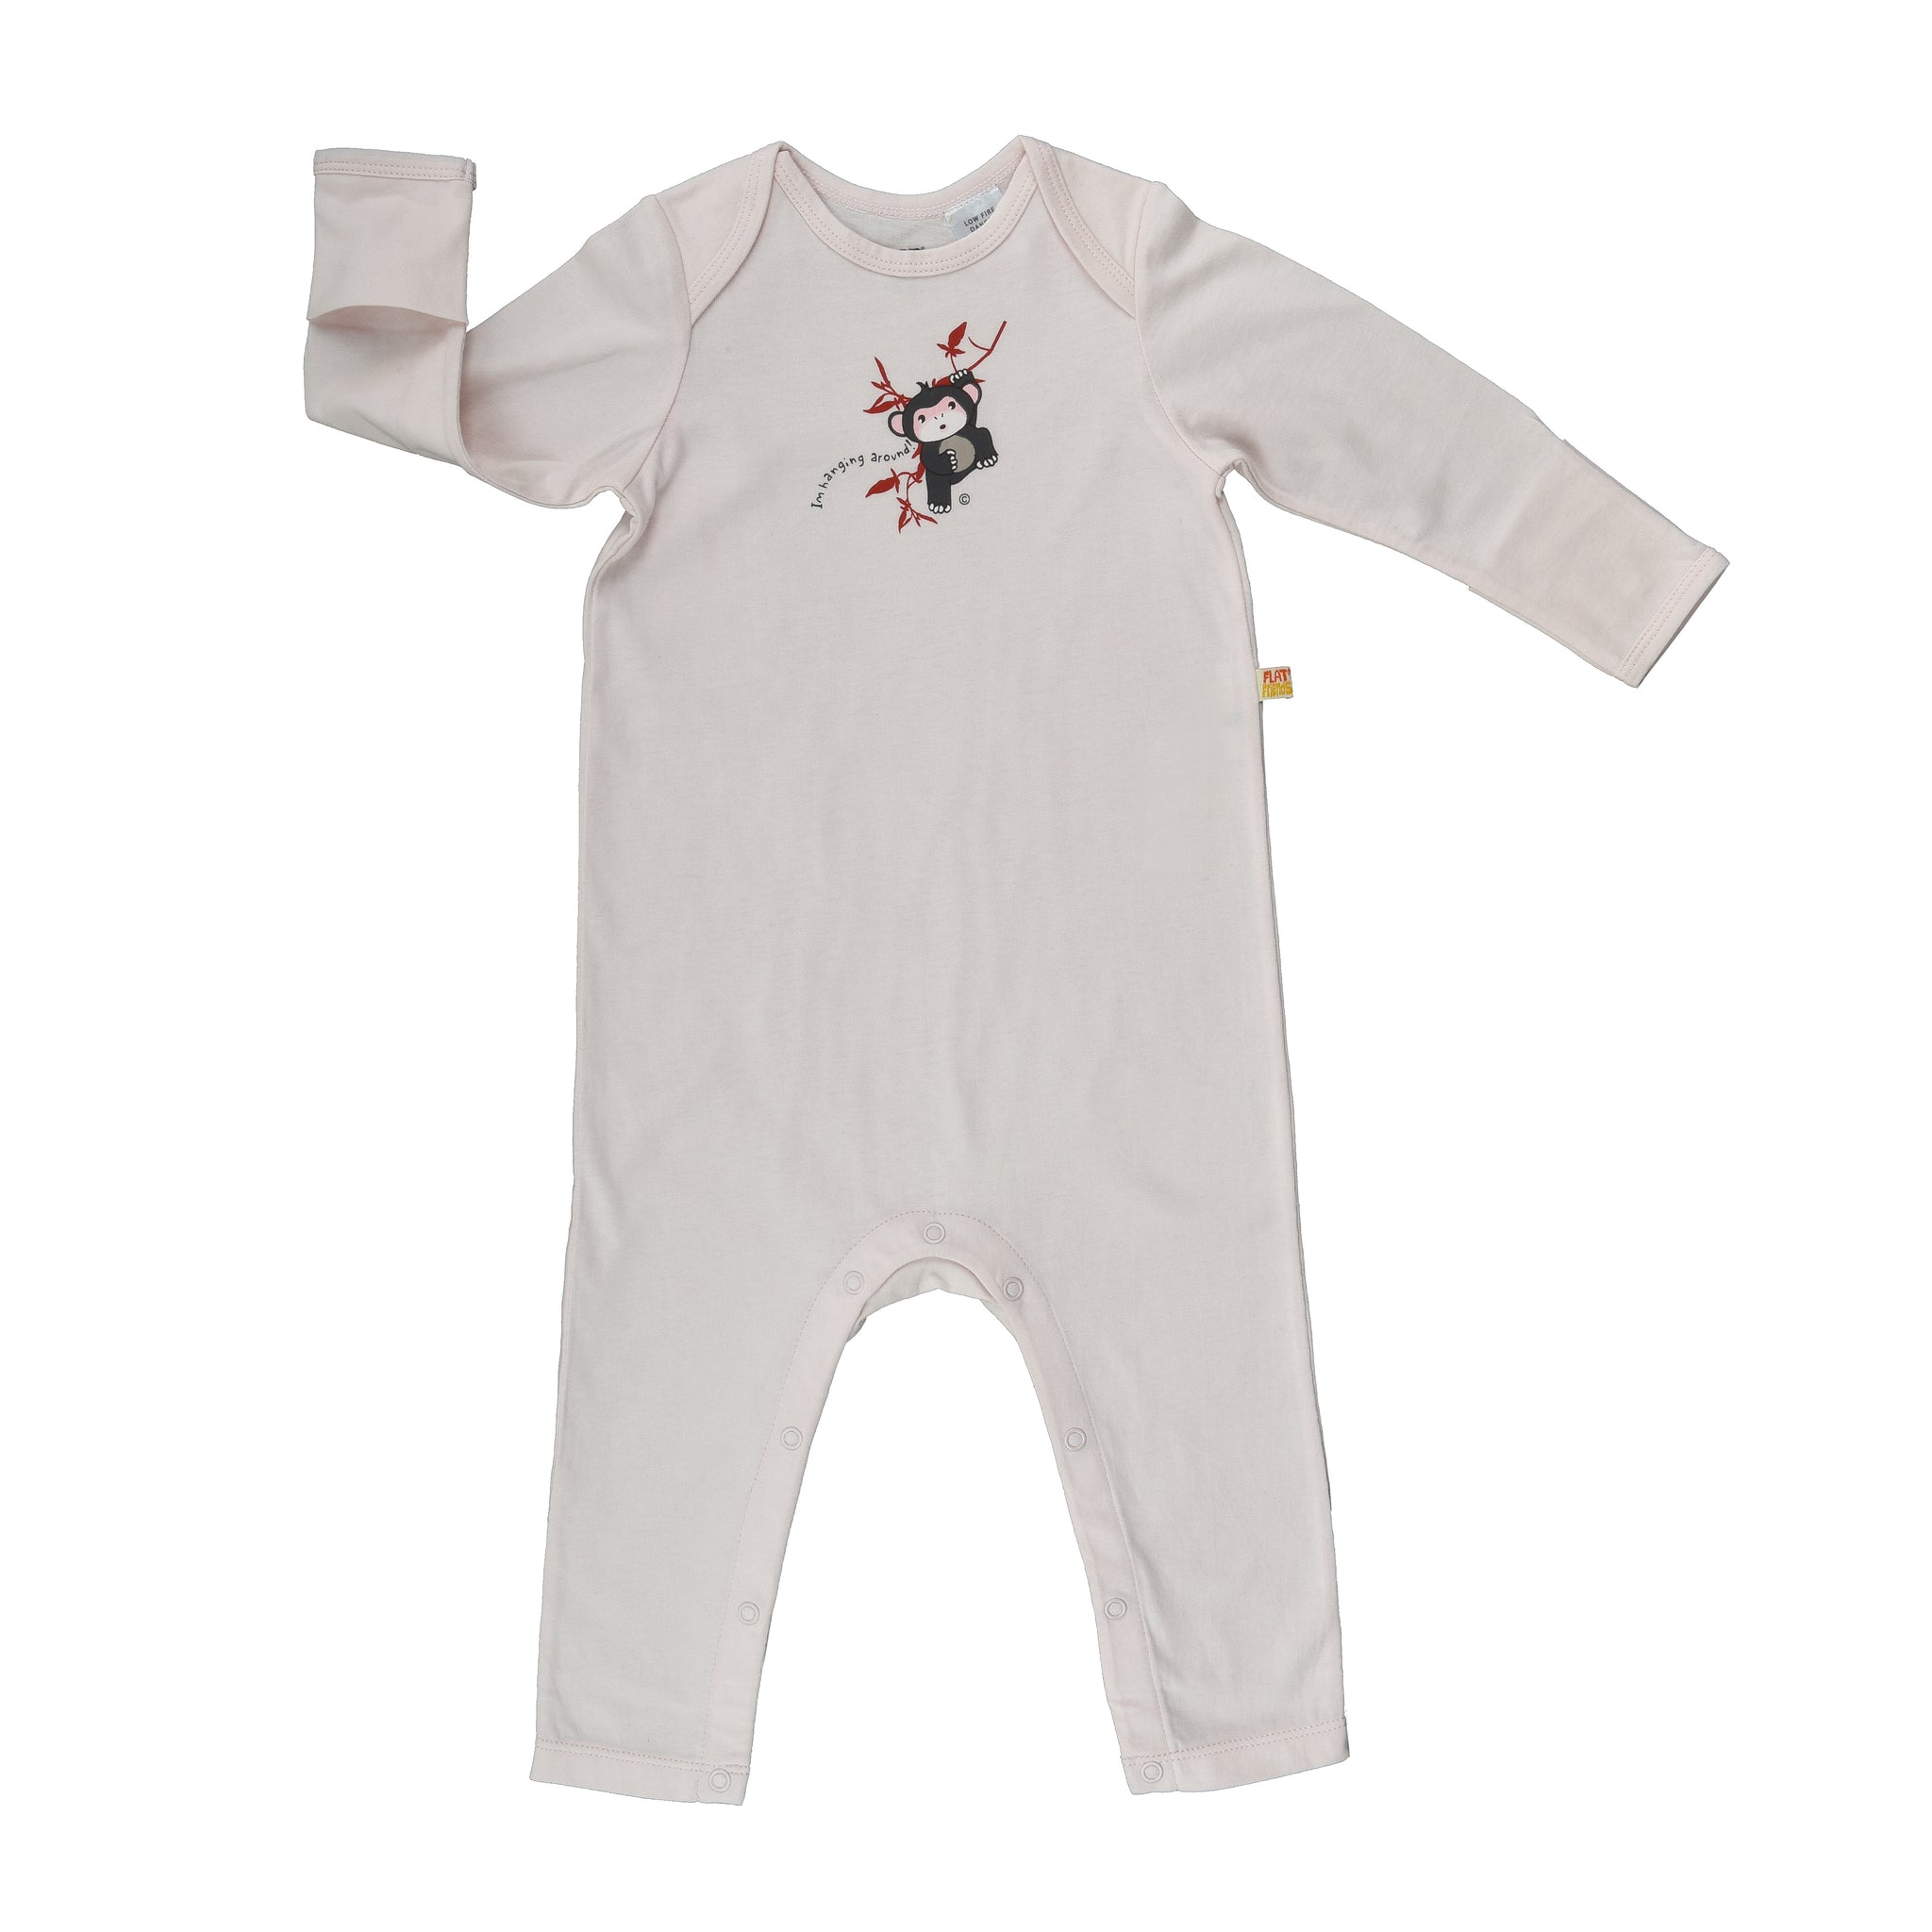 Long Sleeve Baby Jump Suit - Organic Cotton -Chimp